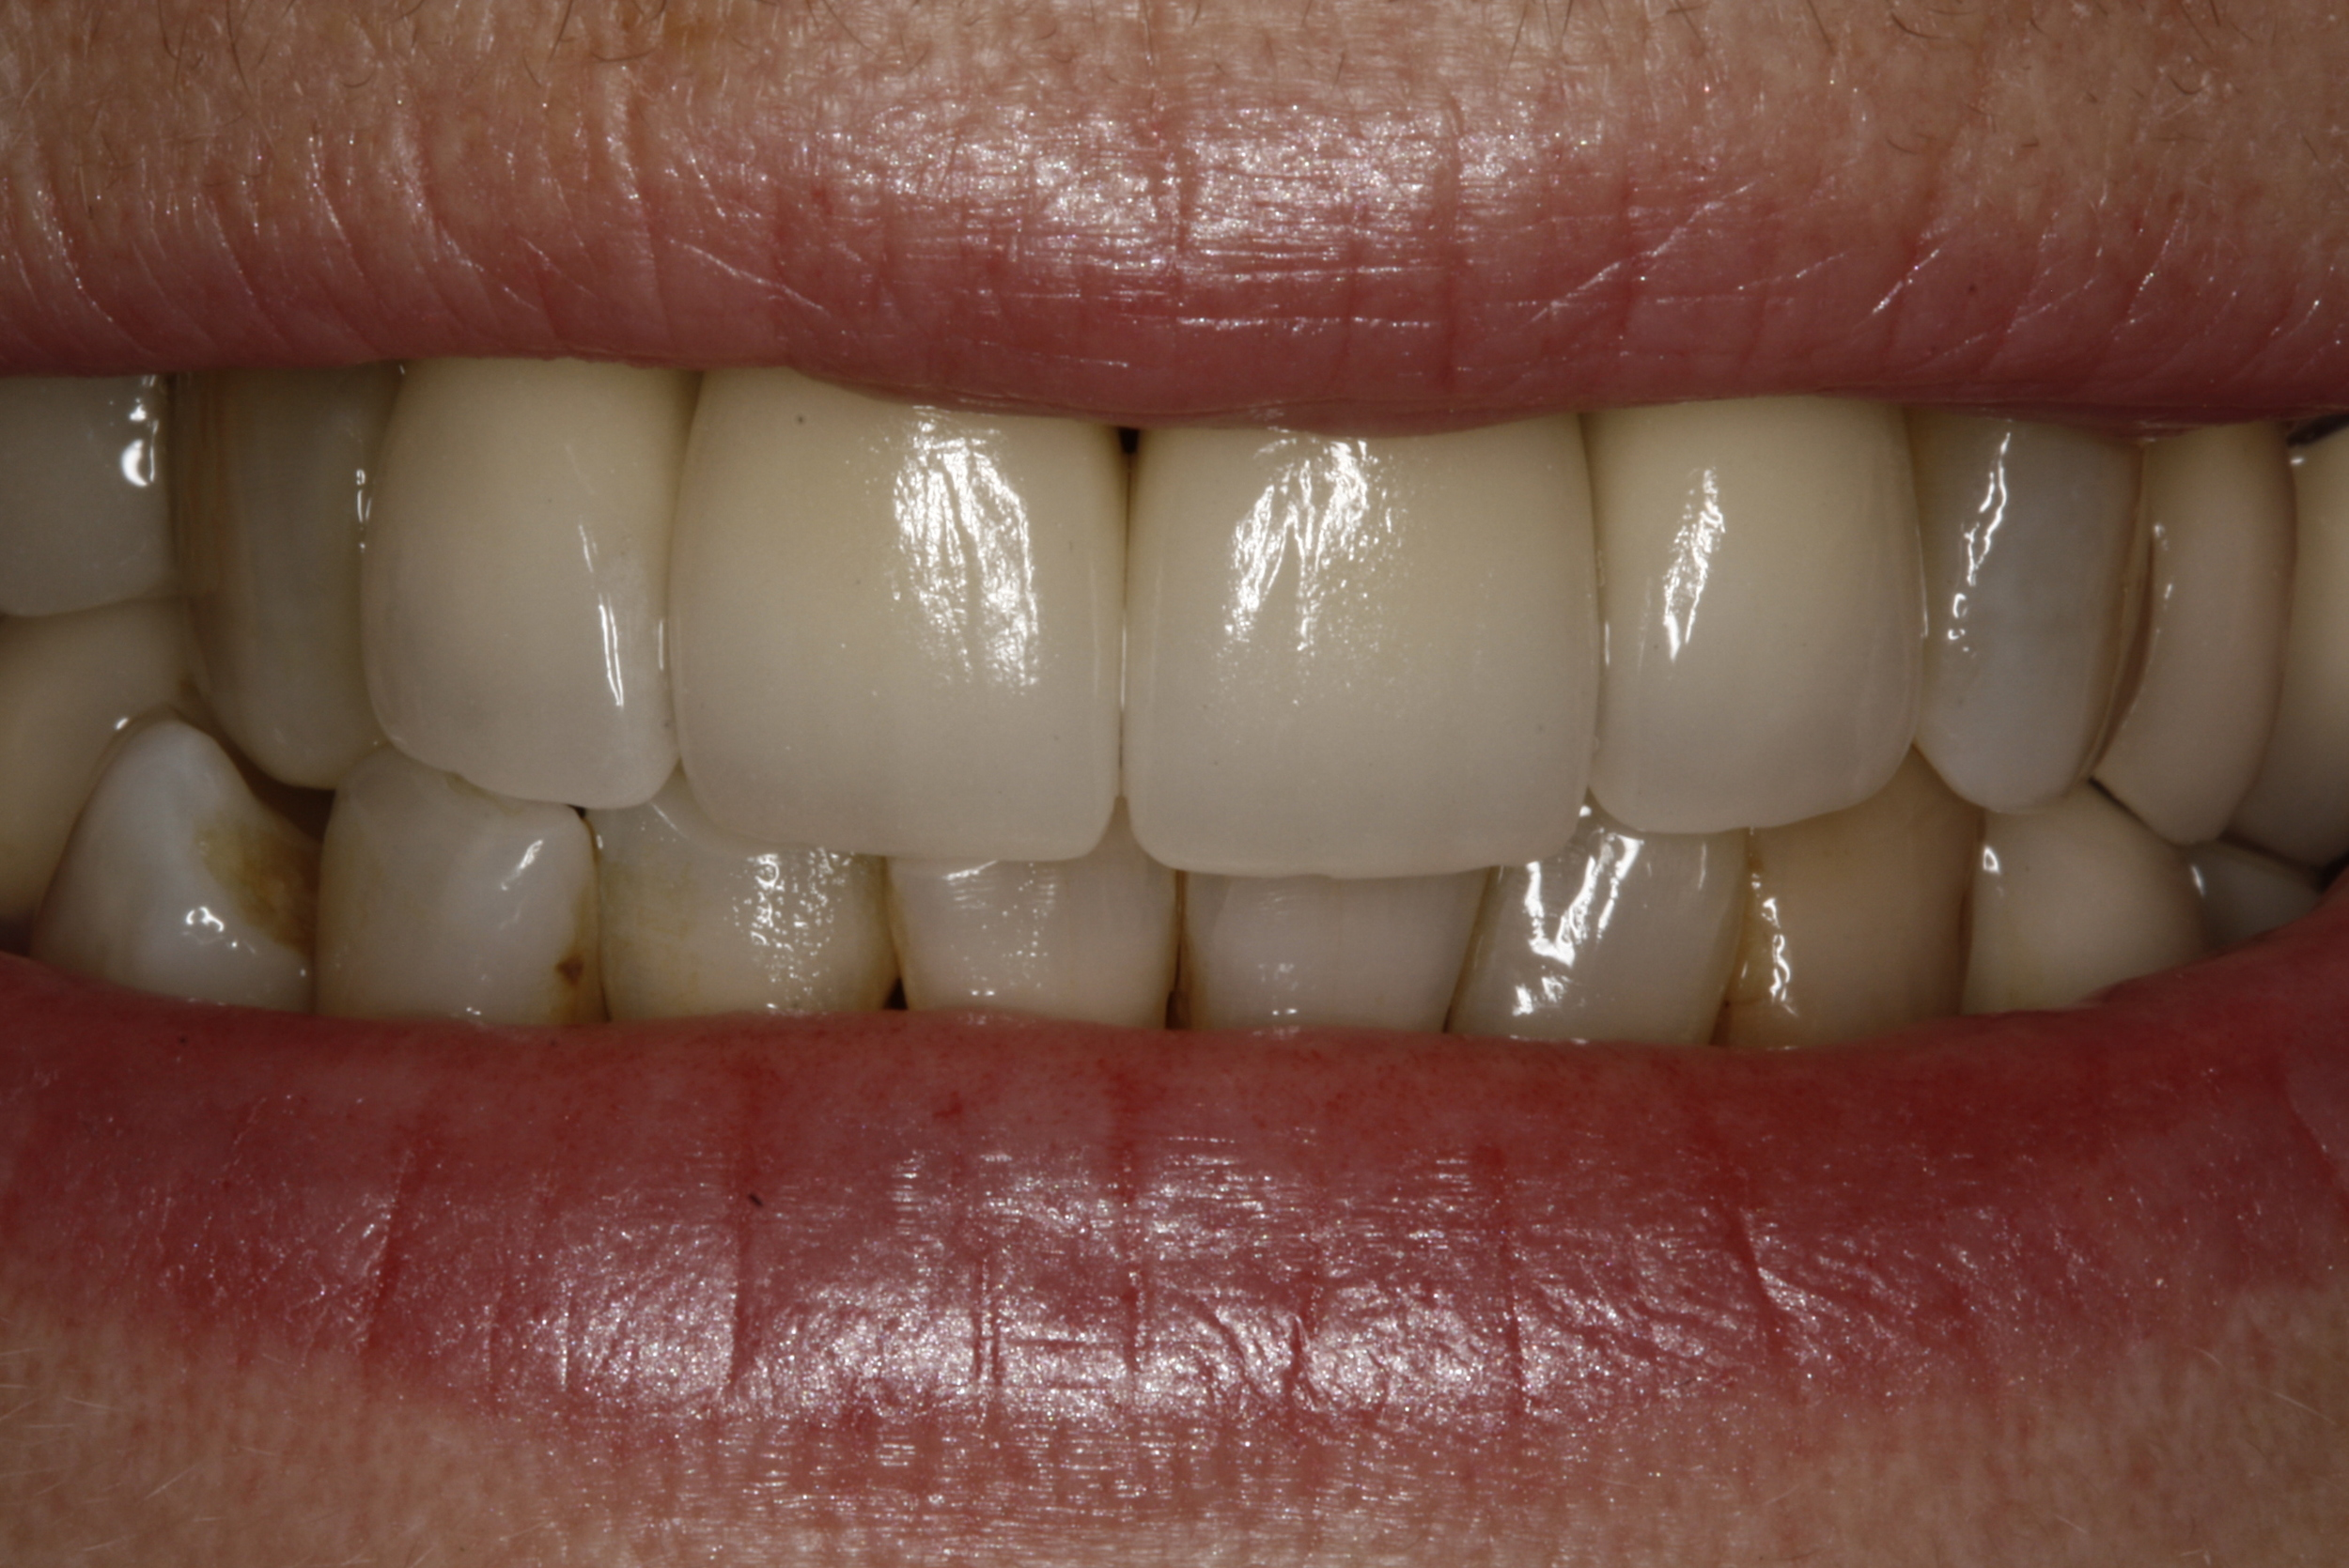 E. Porcelain Crowns (2).jpg